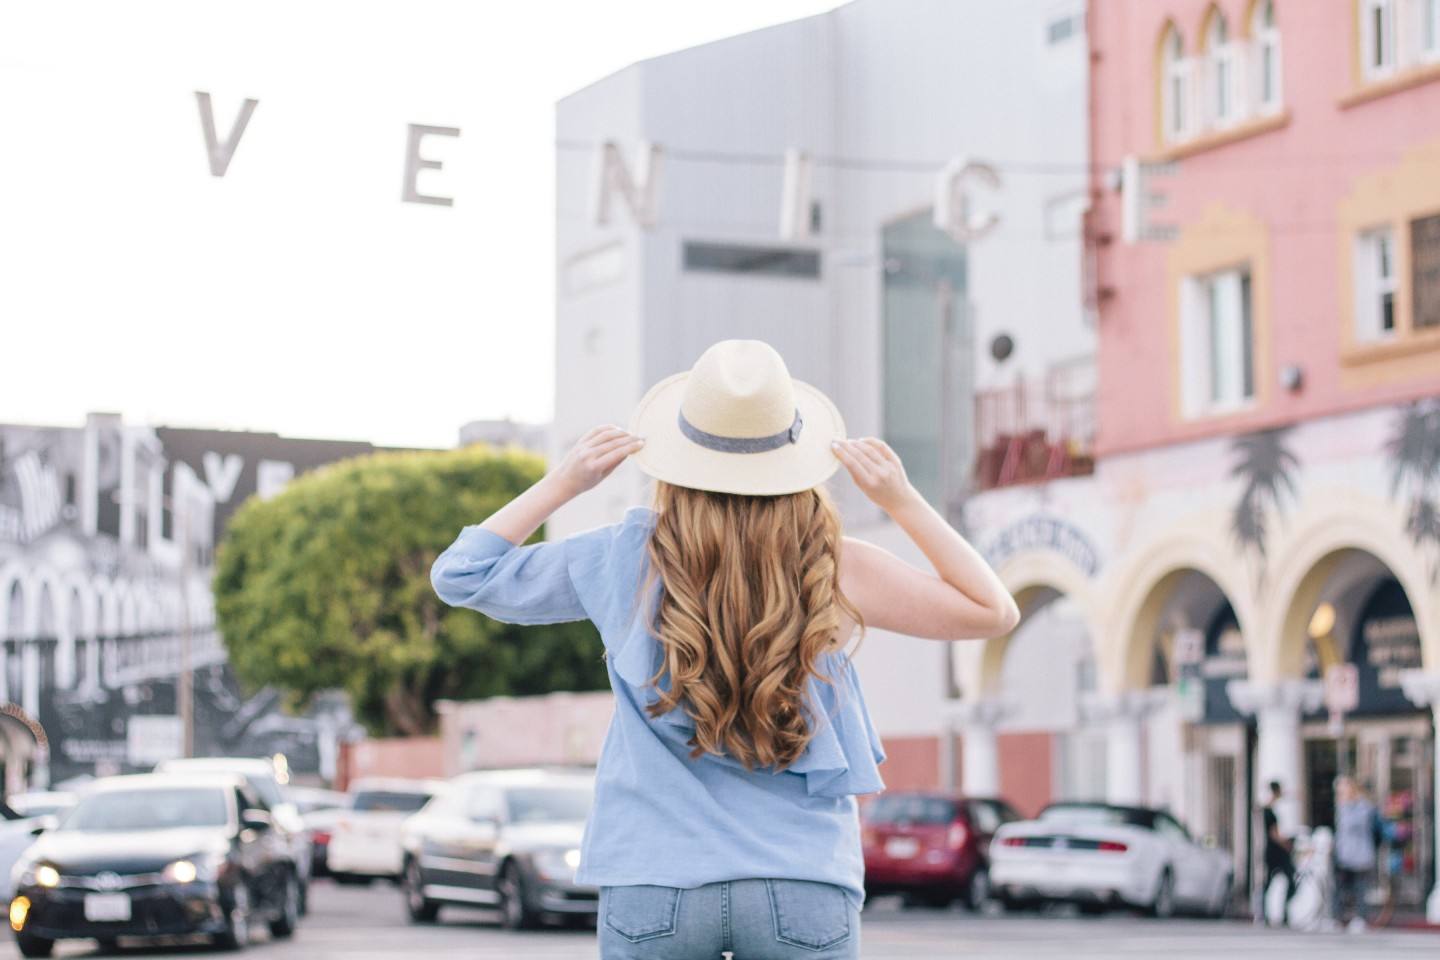 Lifestyle blogger Mollie Sheperdson shares a look in Venice Beach, California